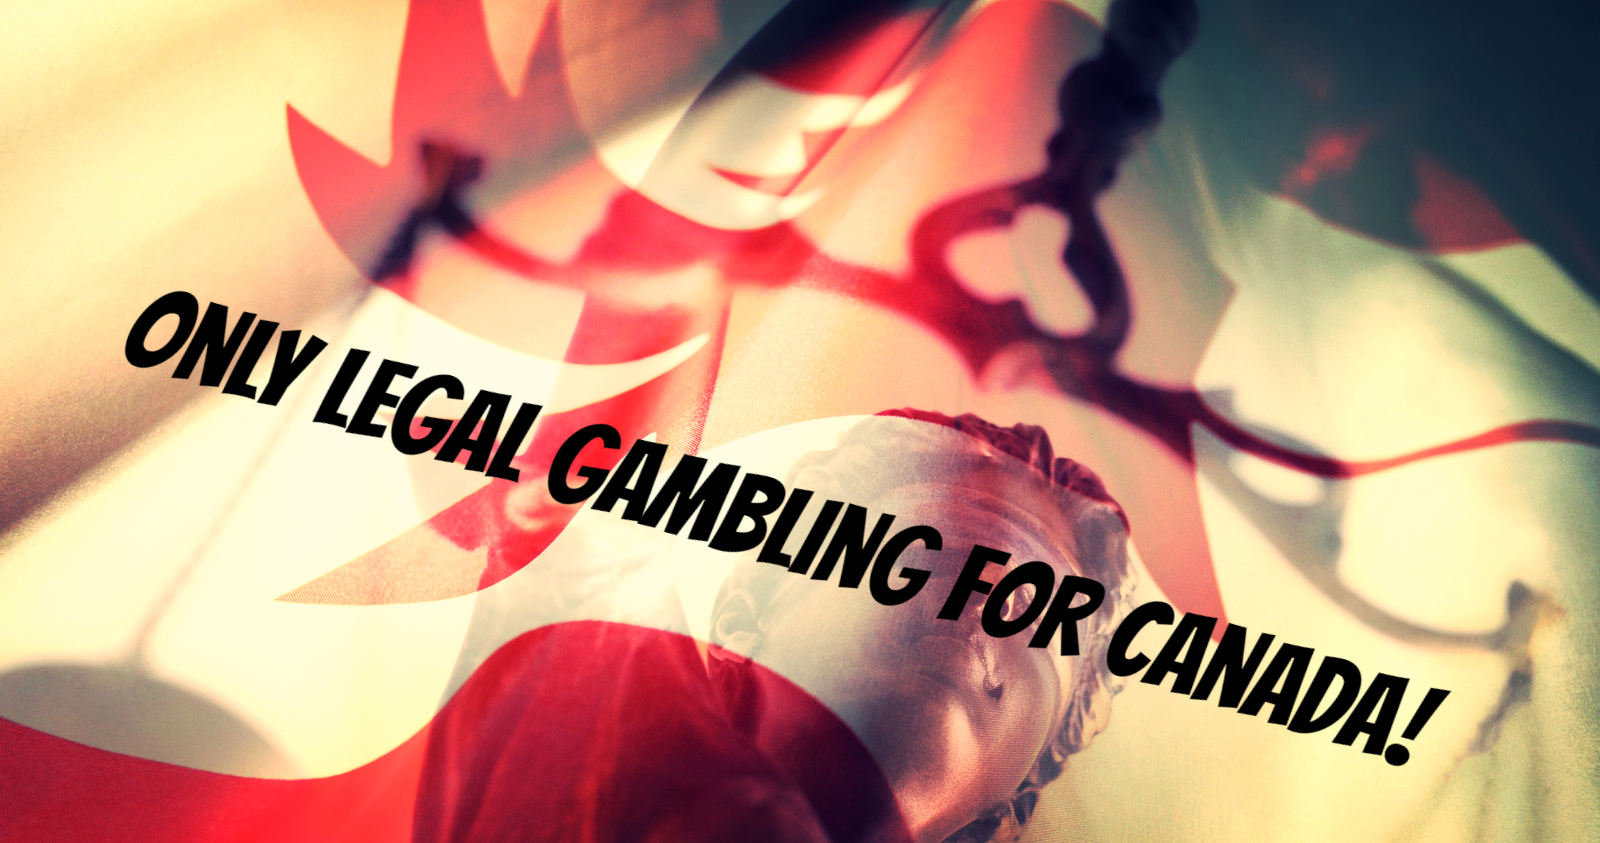 Legal Gaming Sites - Know Where to Find